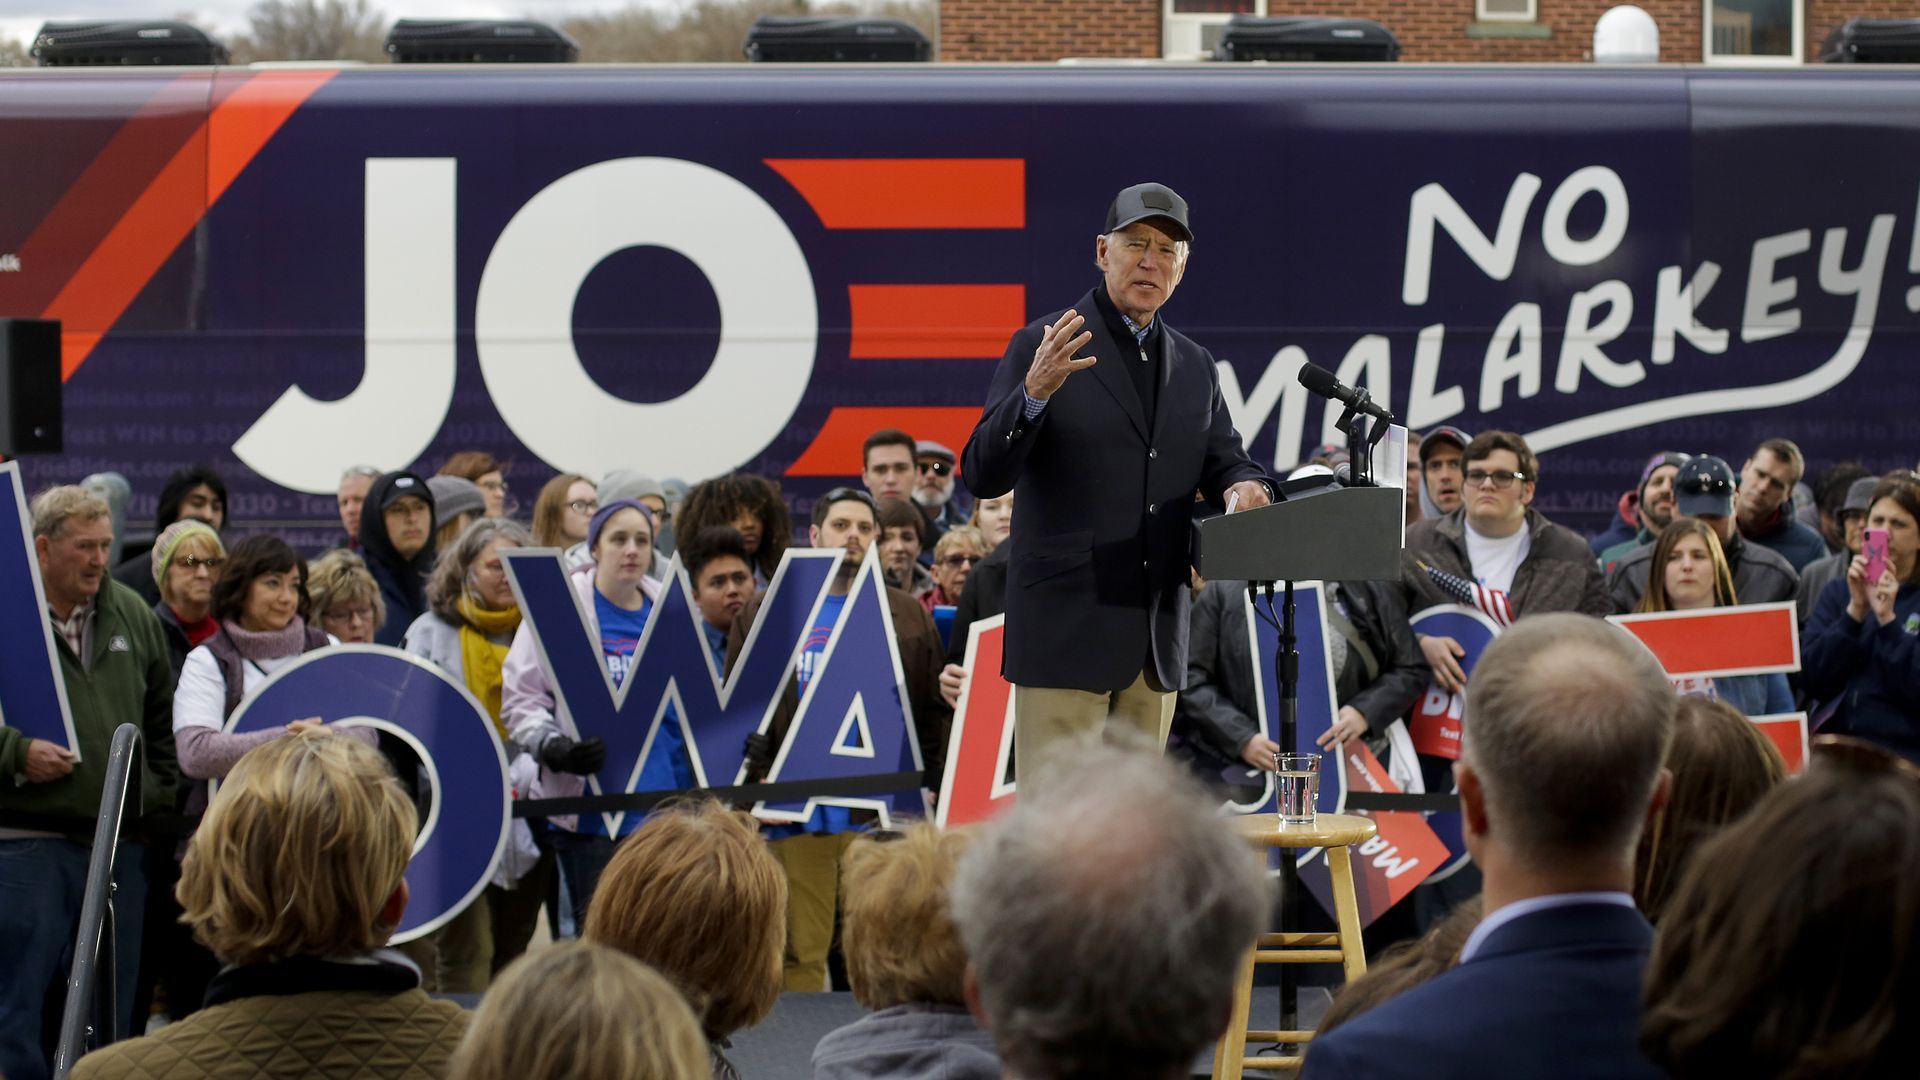 Democratic presidential candidate  Joe Biden speaks during a campaign event on November 30, 2019 in Council Bluffs, Iowa.